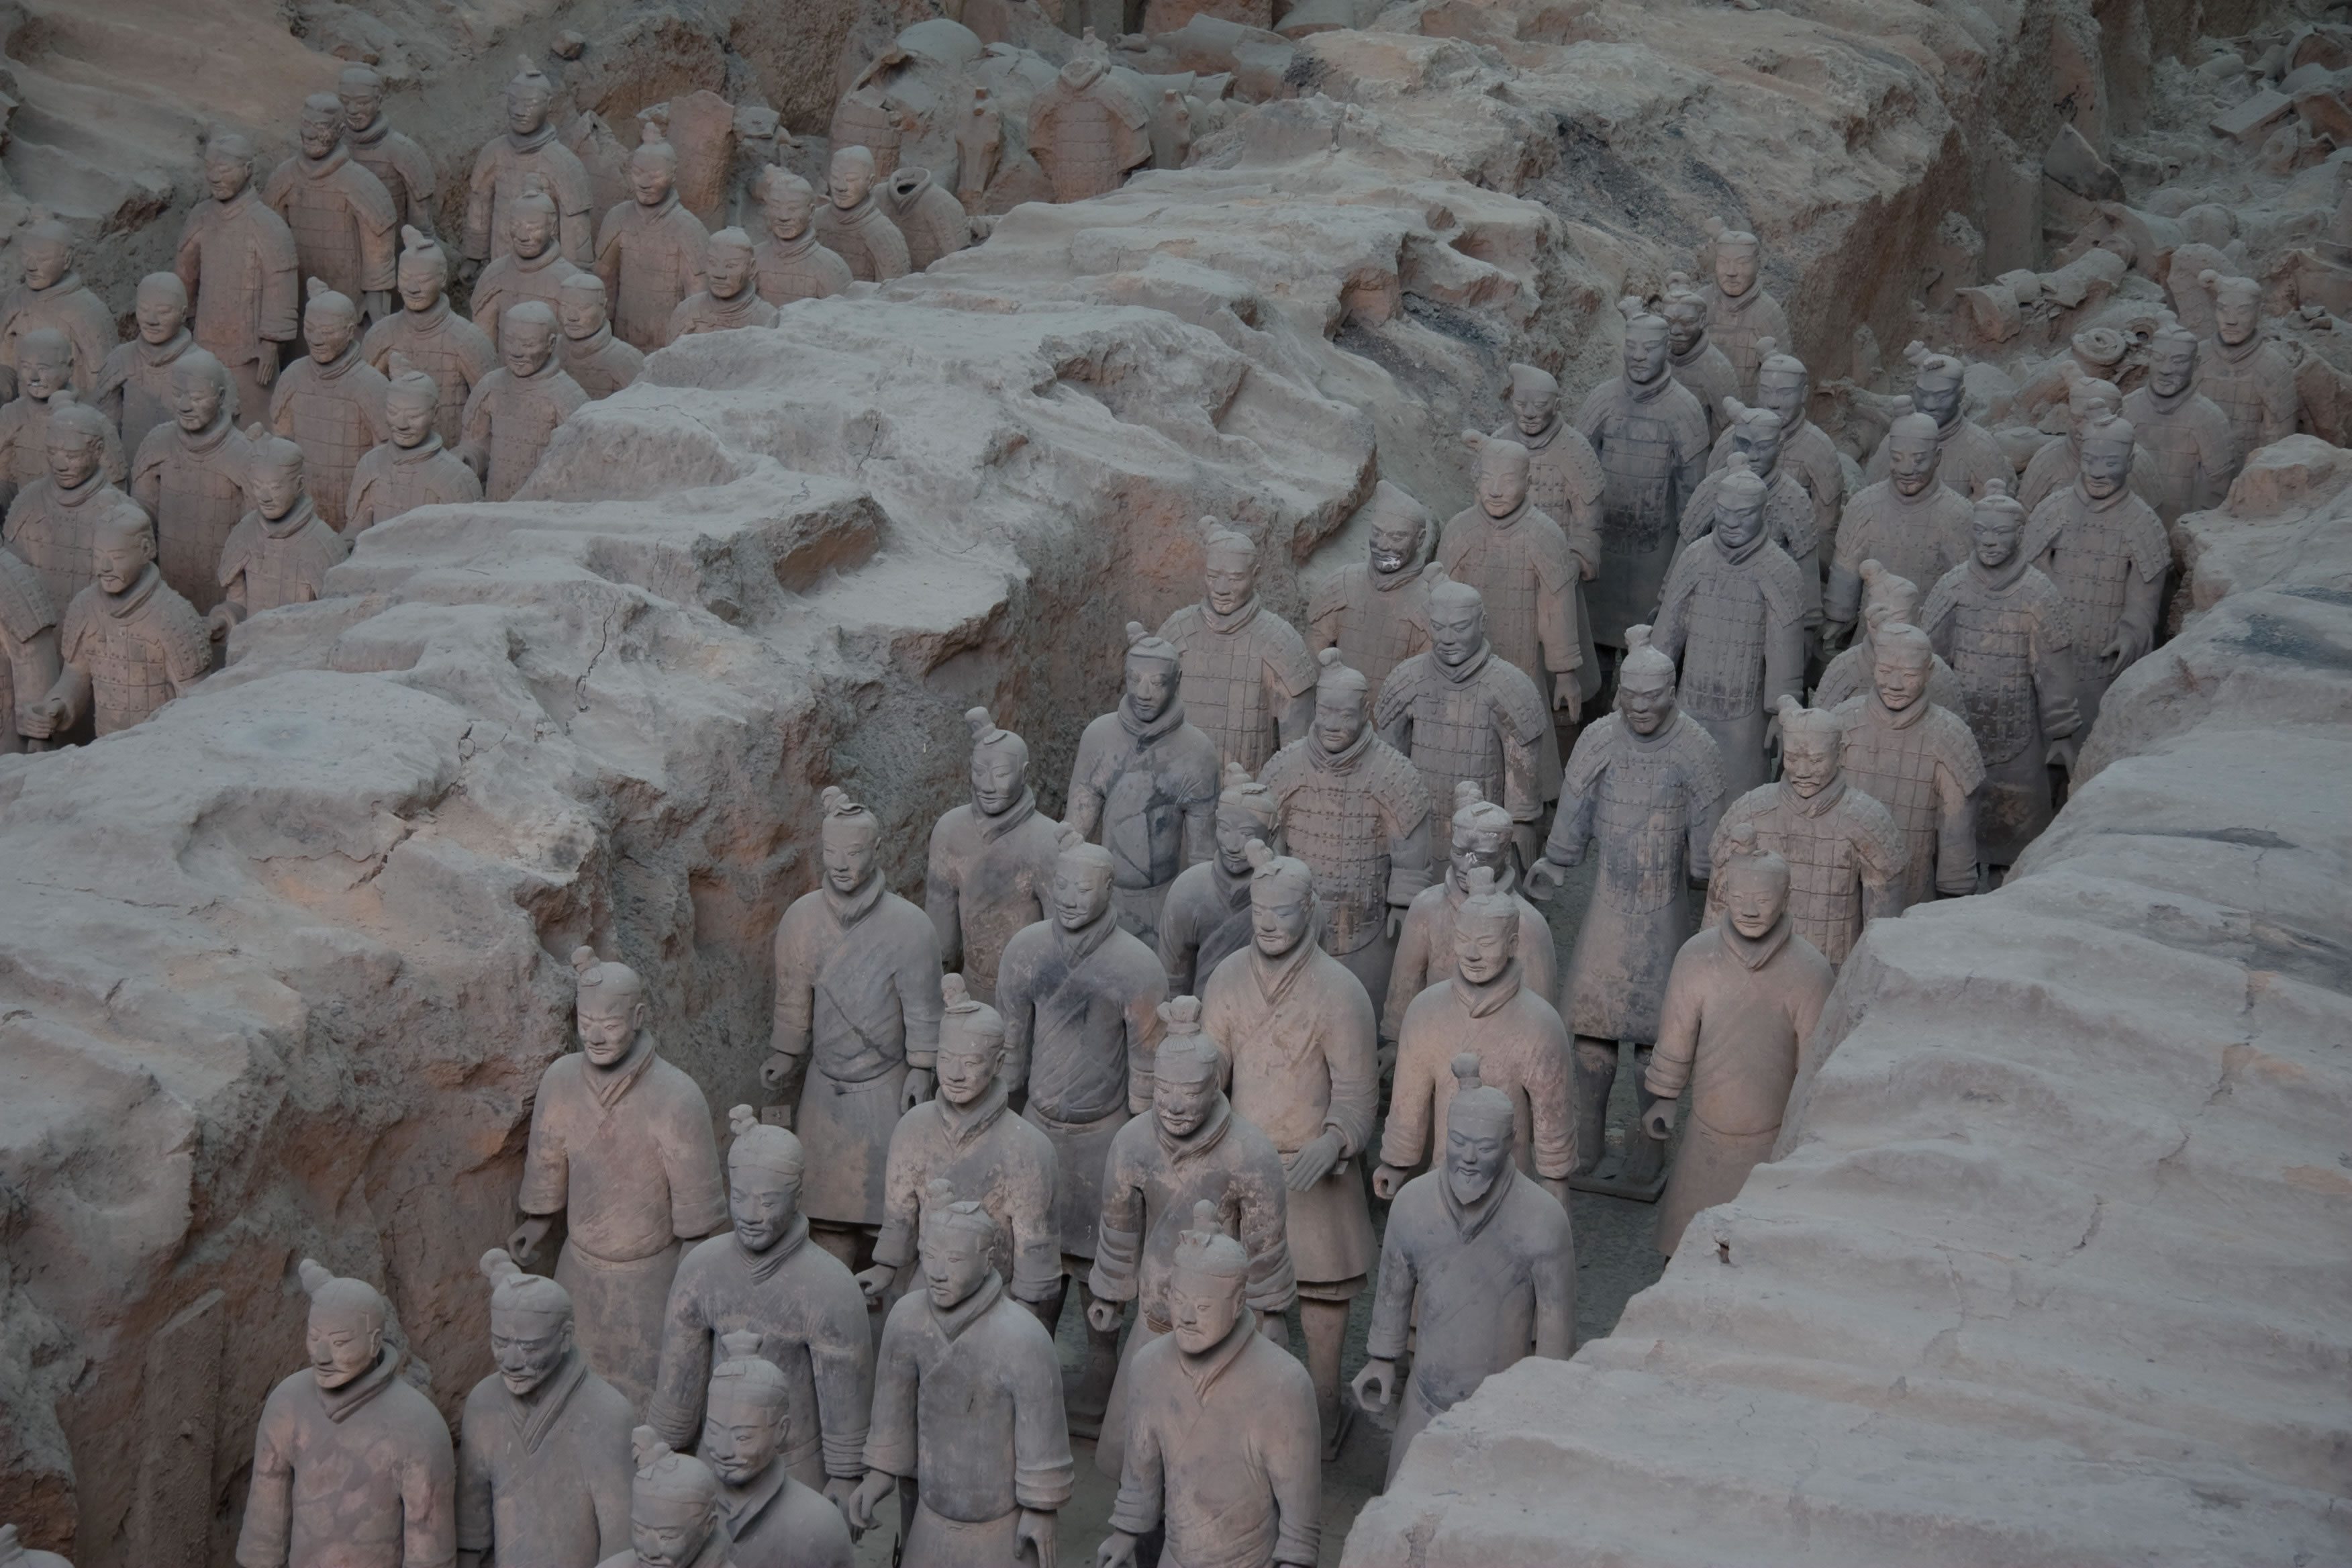 terracotta clay army images